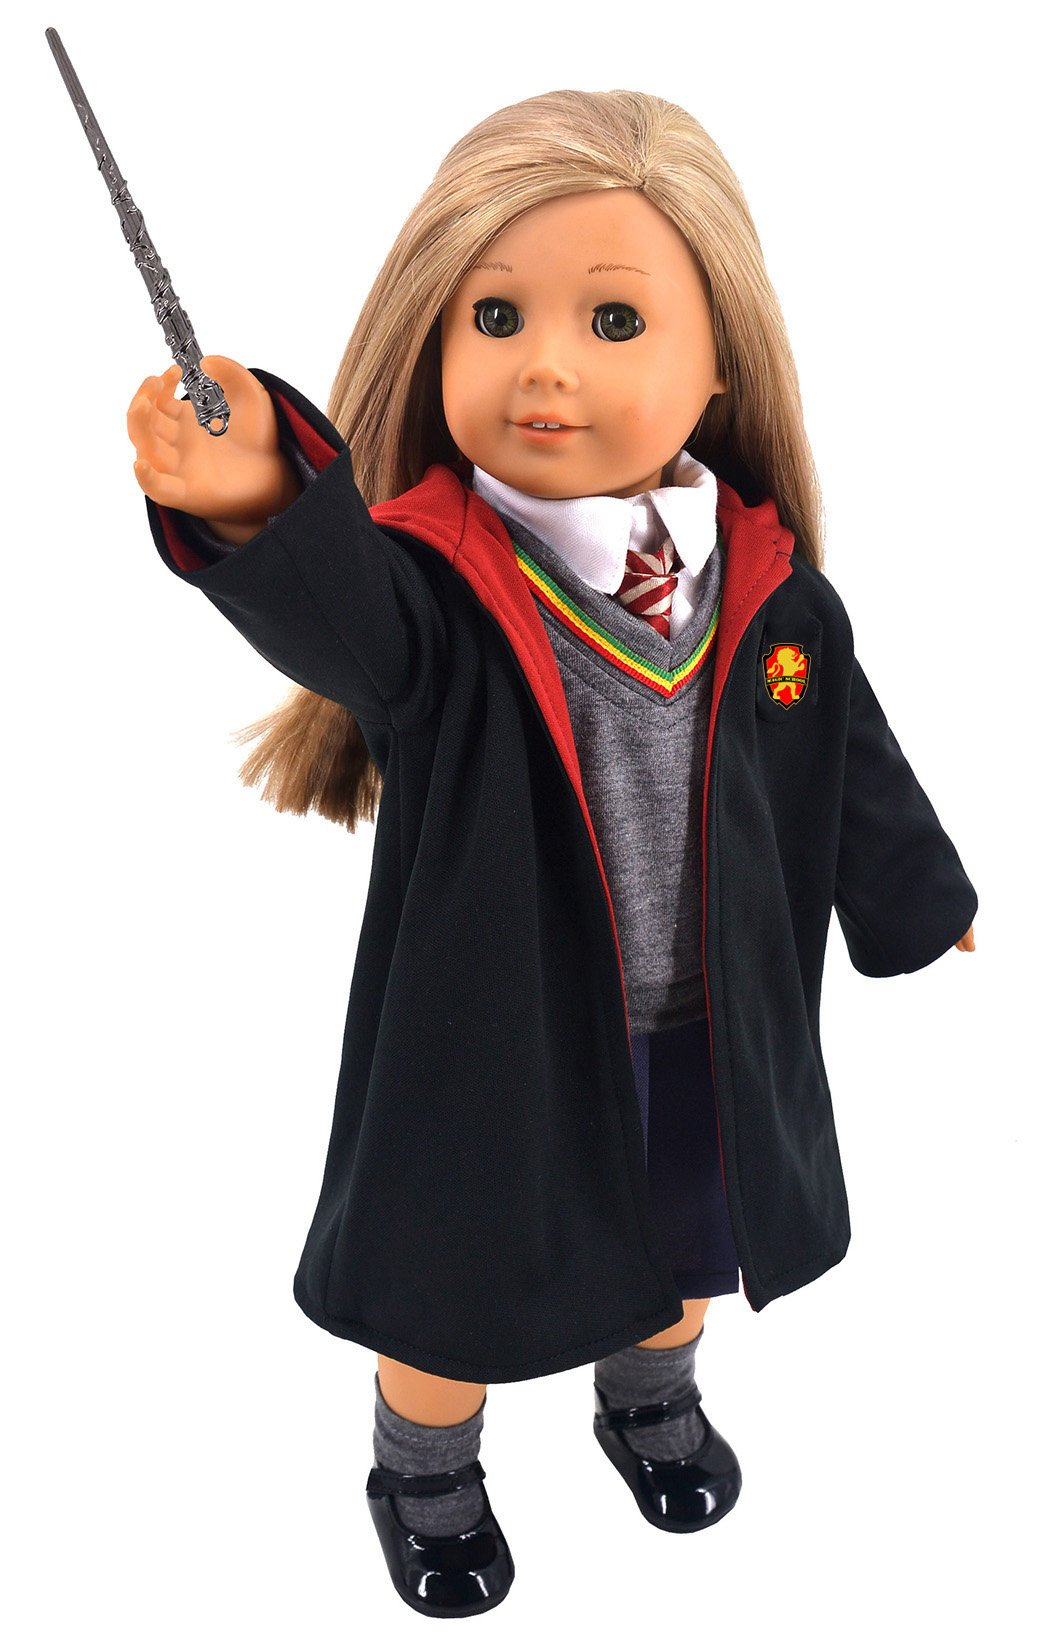 ebuddy Hermione Granger- Inspired School Uniform Doll Clothes Shoes for American Girl Dolls